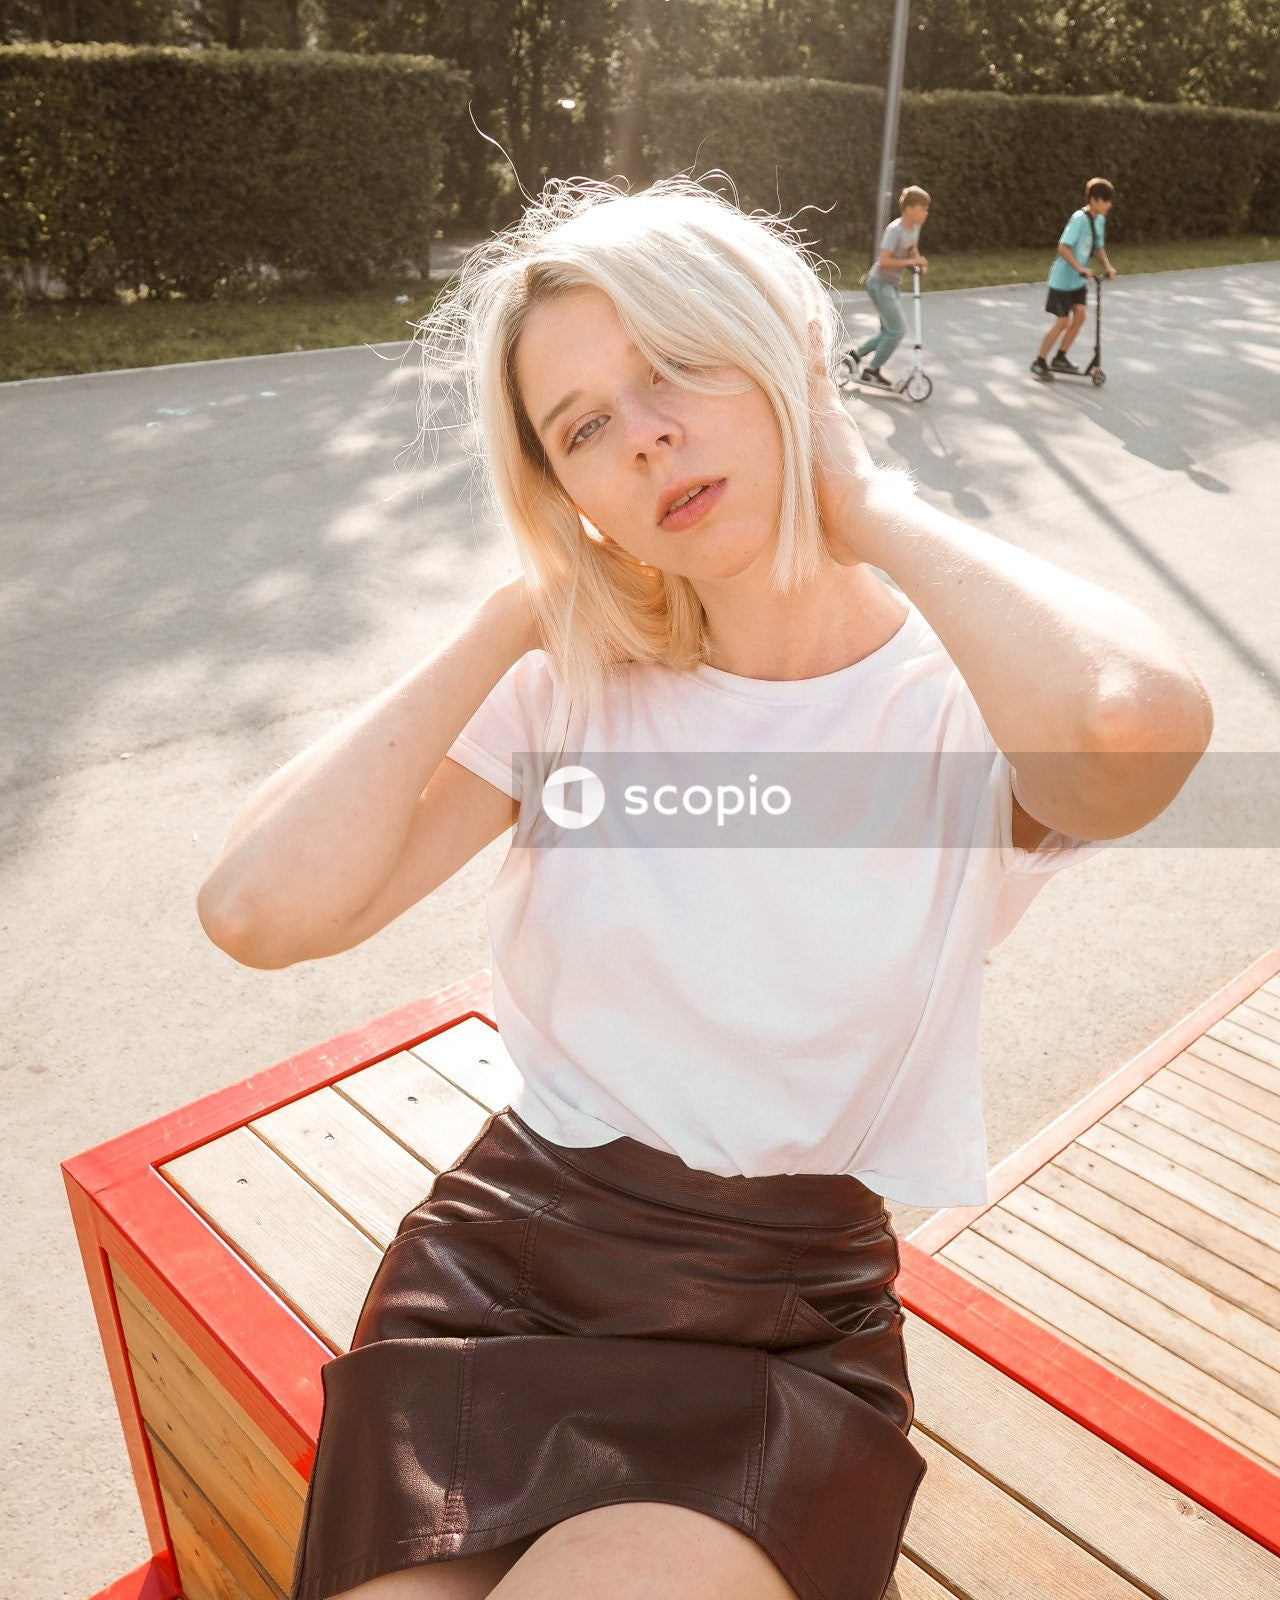 Girl in white tank top and black skirt sitting on red wooden bench